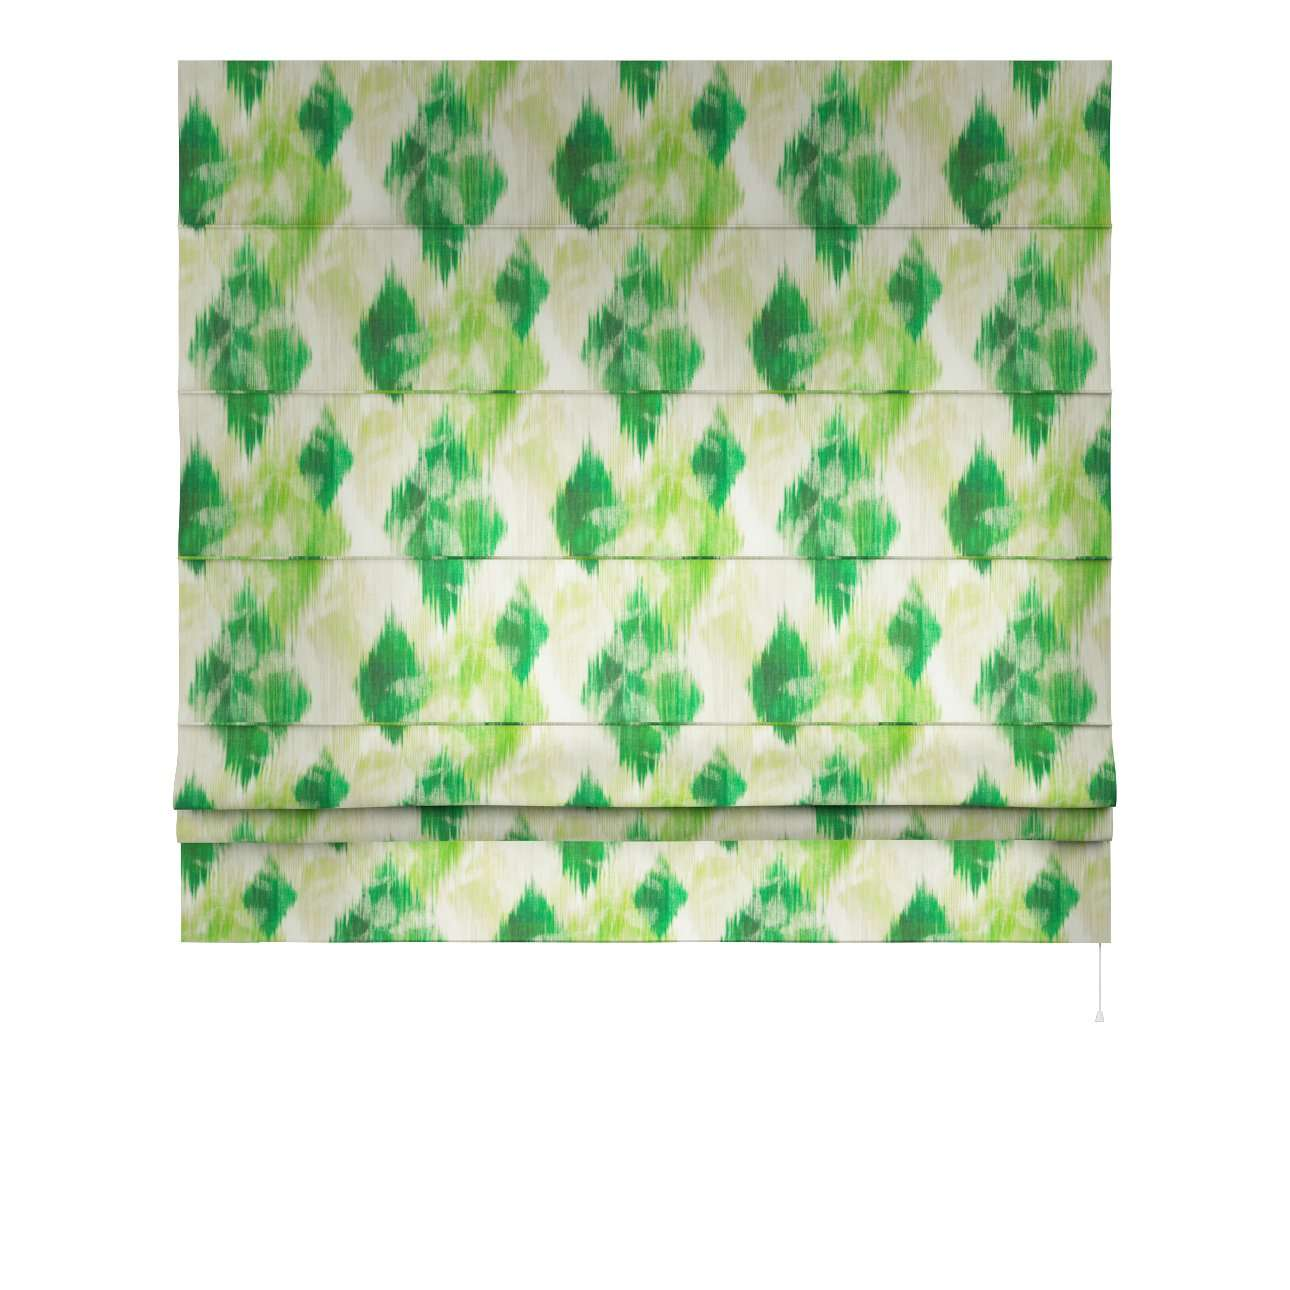 Padva roman blind  80 x 170 cm (31.5 x 67 inch) in collection Aquarelle, fabric: 140-70